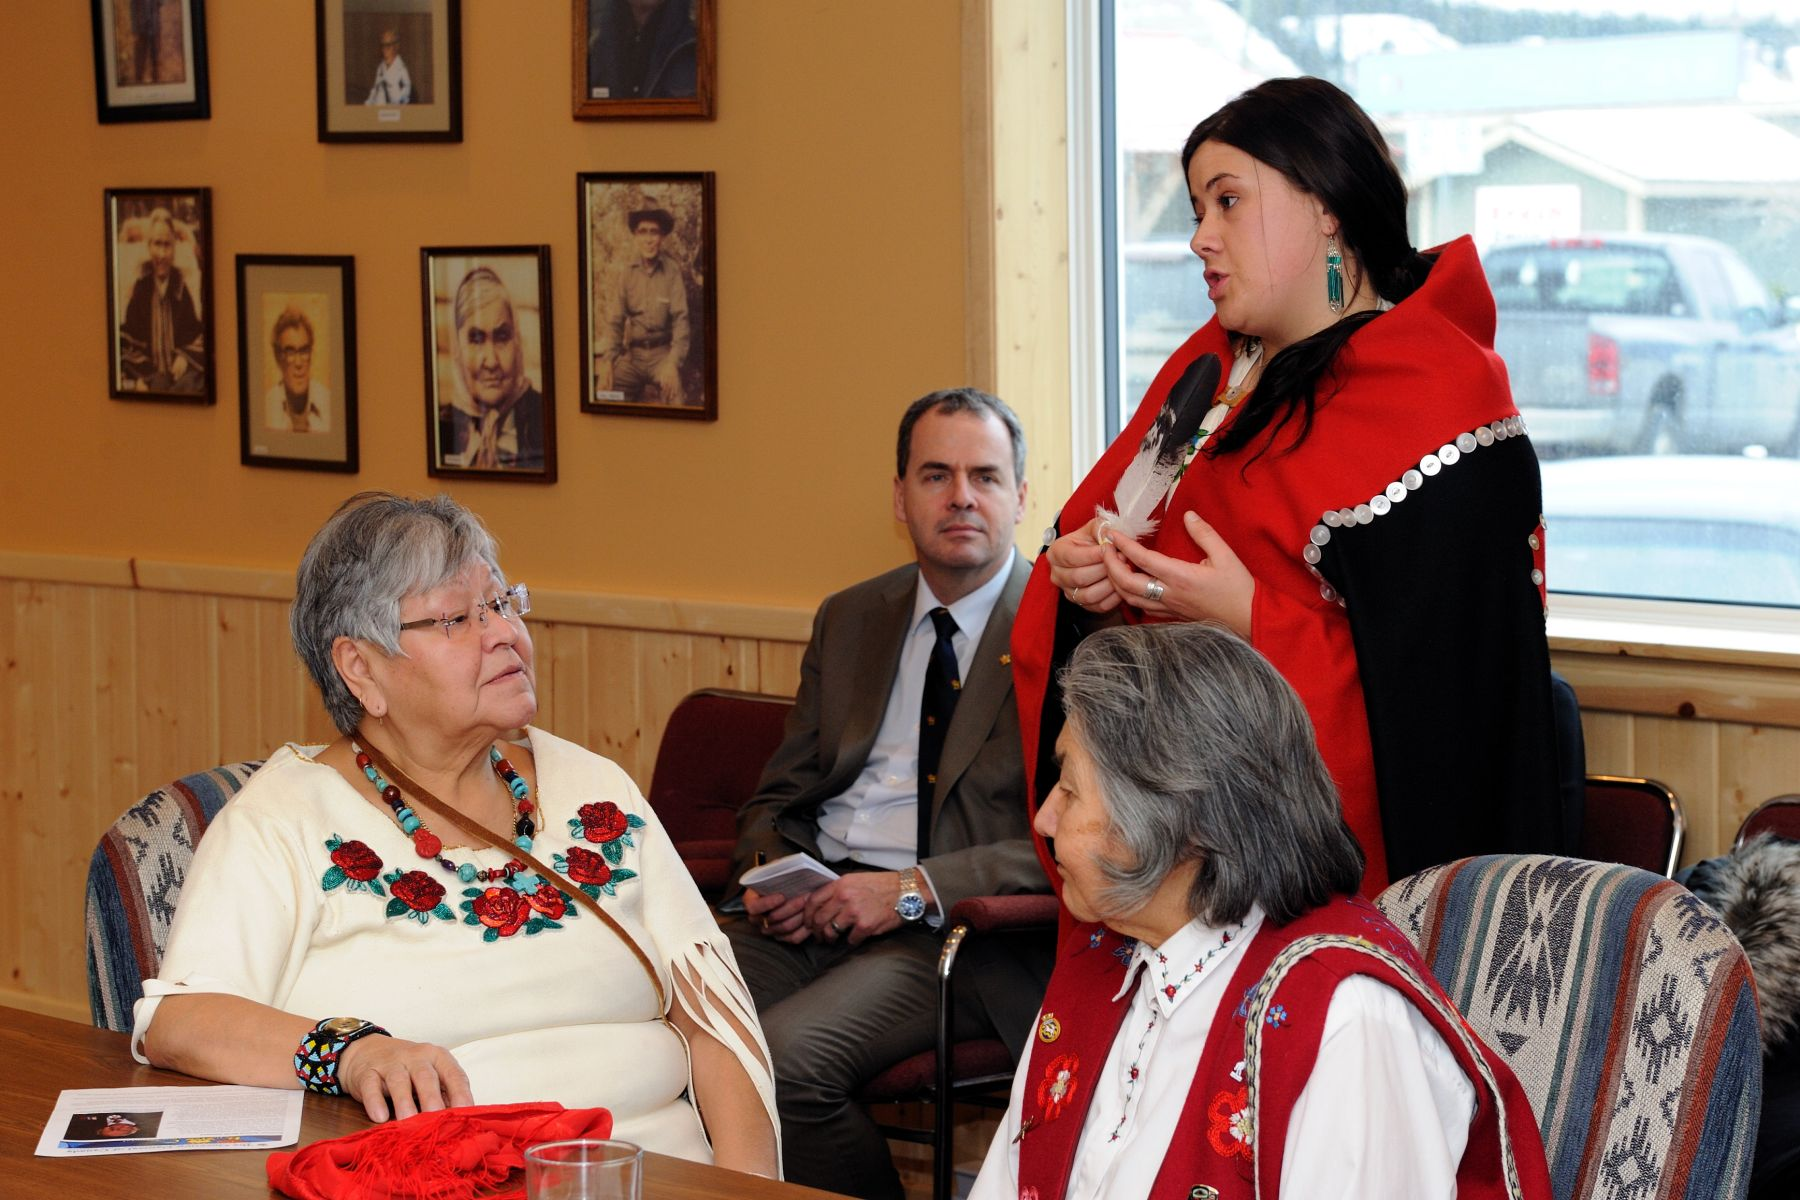 The meeting was held at the offices of the Council of Yukon First Nations, in Whitehorse.